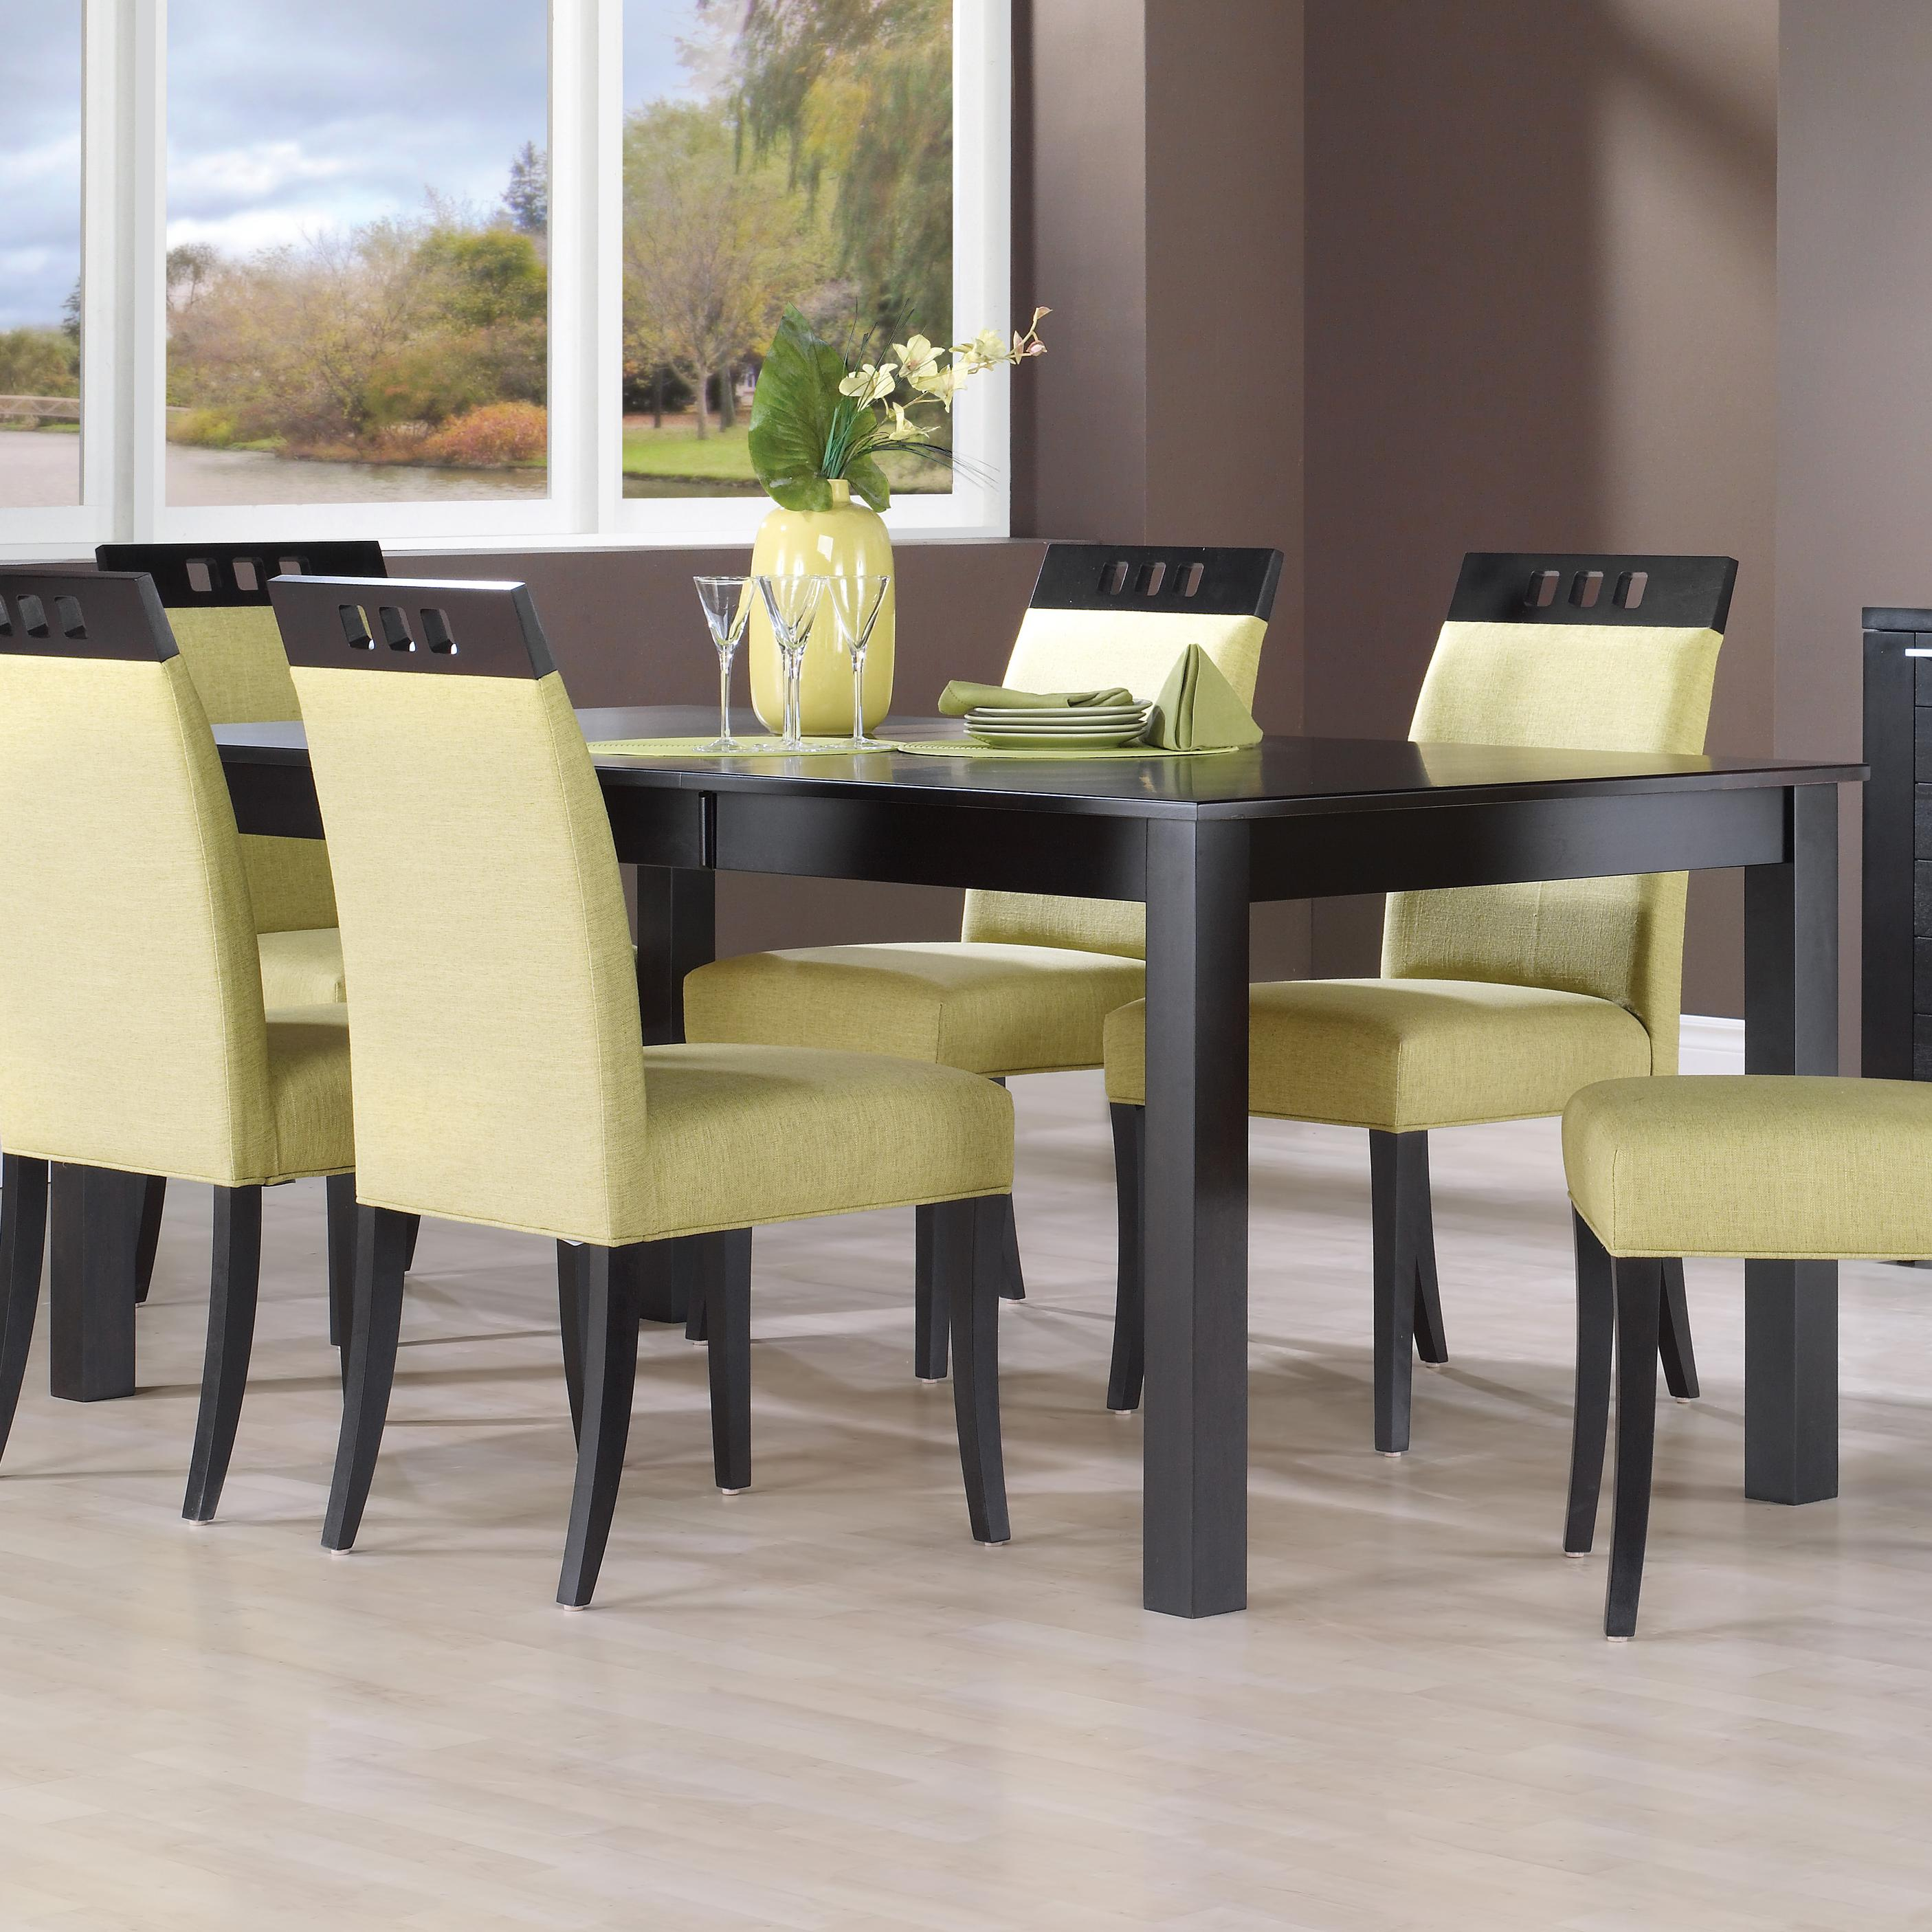 canadel custom dining tre038680505mhdd1 customizable rectangular table with legs becker. Black Bedroom Furniture Sets. Home Design Ideas